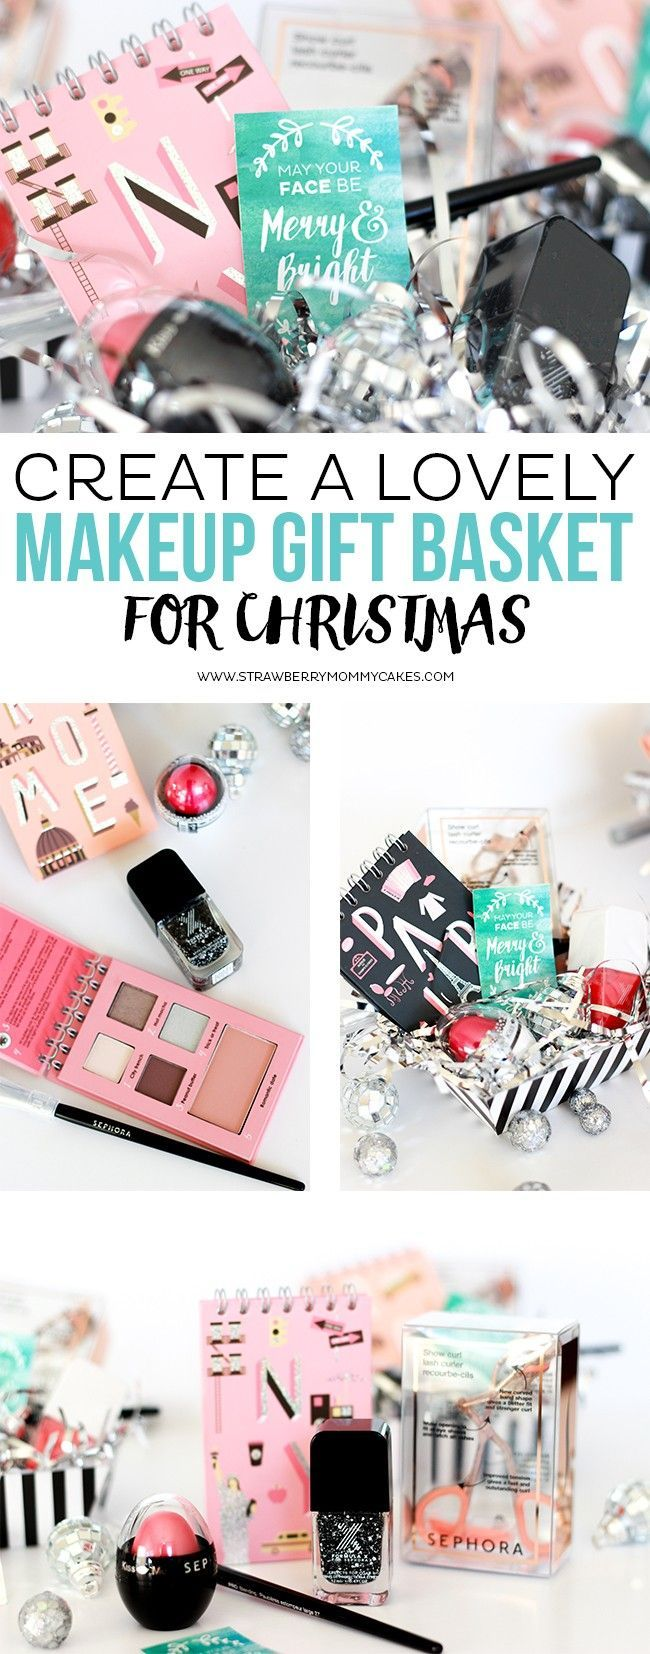 Create a LOVELY Makeup Gift Basket for Christmas {$100 GIVEAWAY CLOSED                                                                                                                                                                                 More